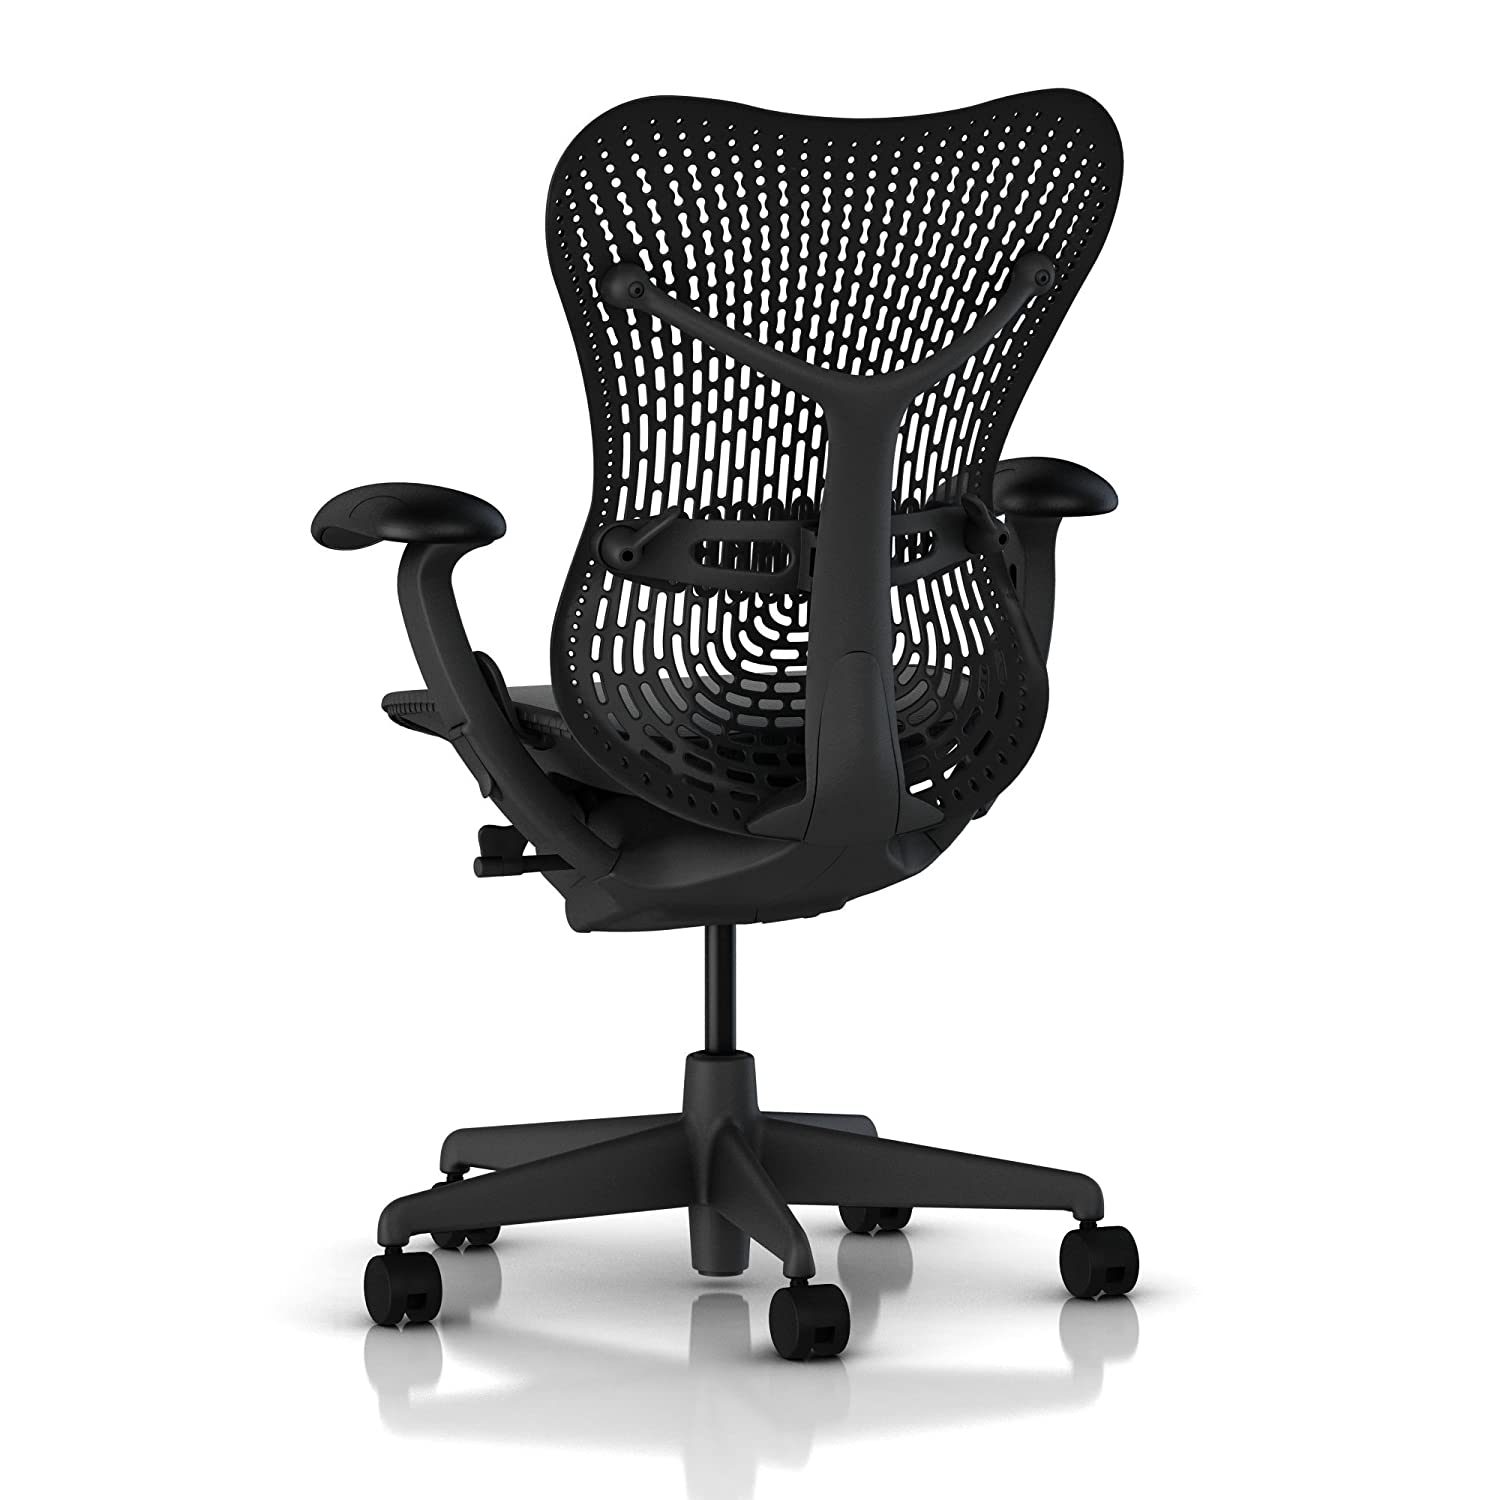 amazoncom herman miller mirra® chair fully loaded color  - amazoncom herman miller mirra® chair fully loaded color graphitekitchen  dining